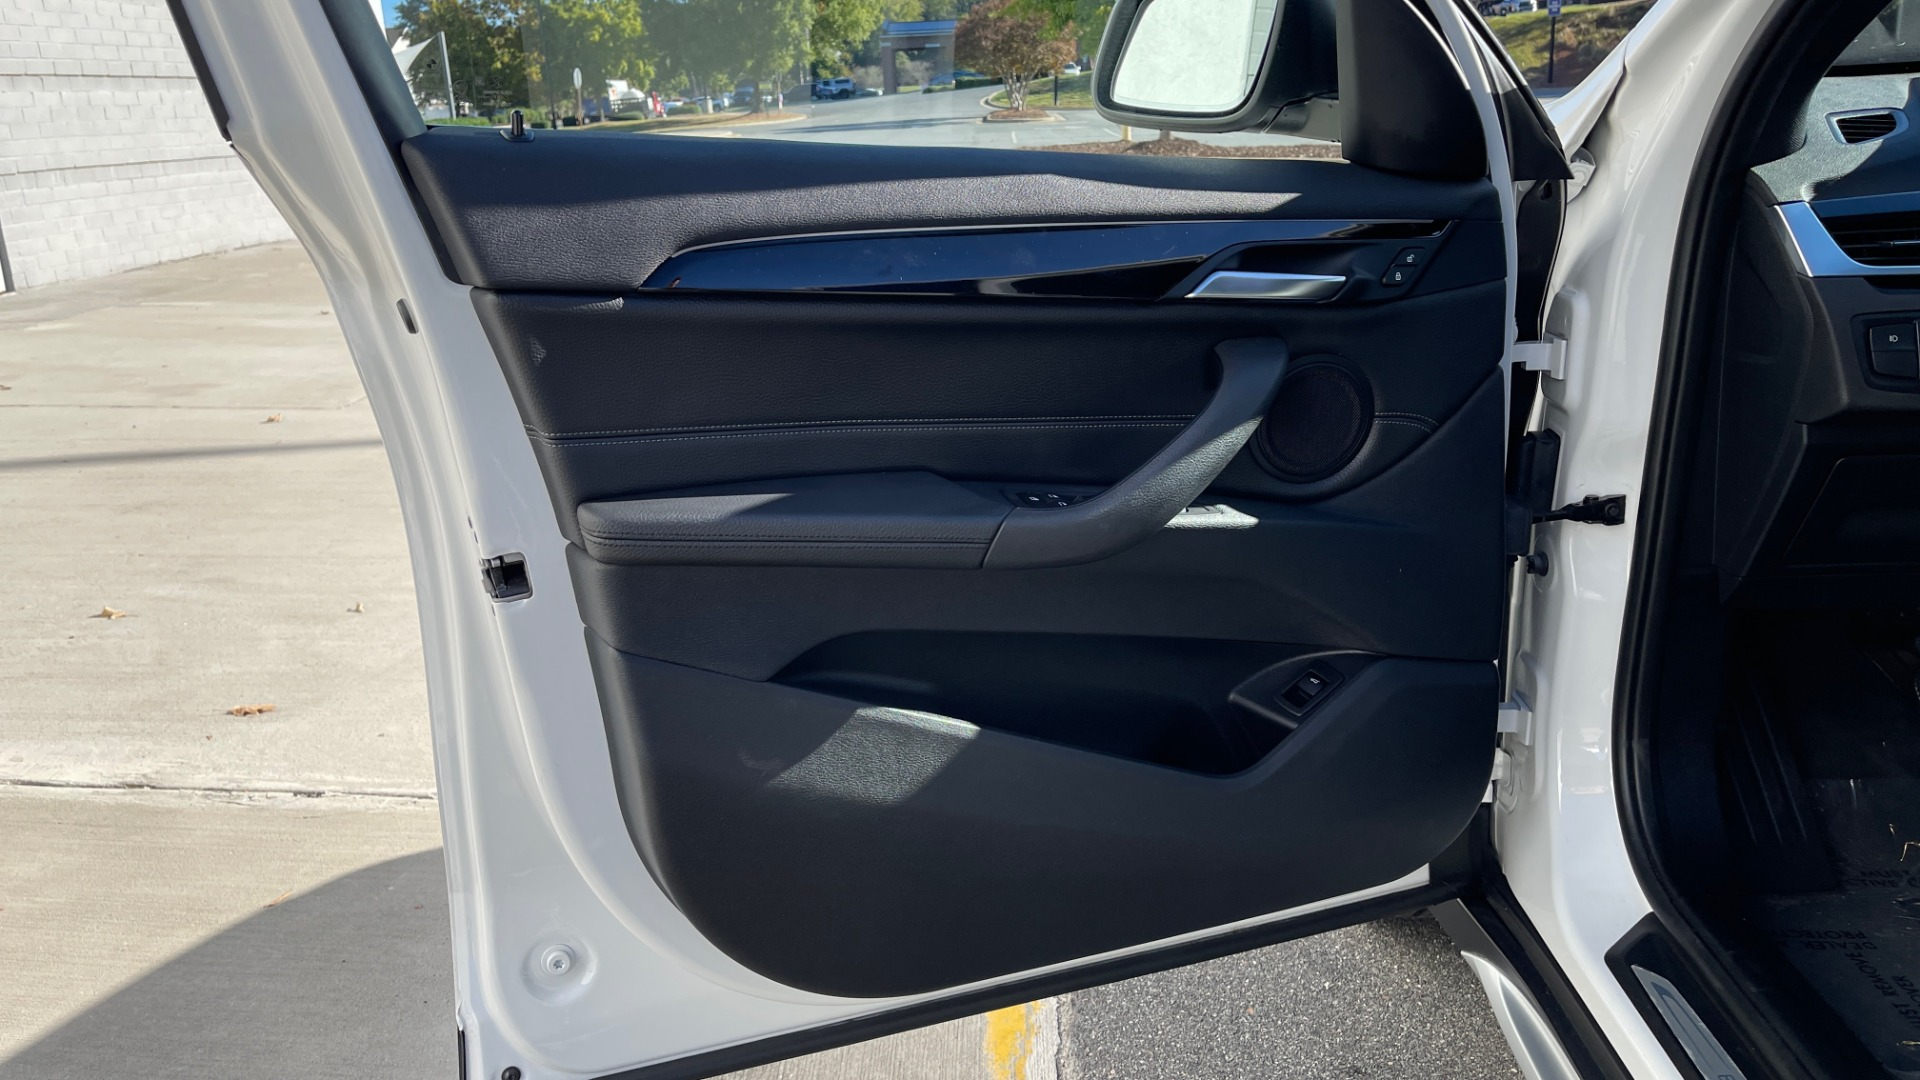 Used 2018 BMW X1 XDRIVE28I / CONV PKG / PANO-ROOF / PARK ASST / REARVIEW for sale $31,995 at Formula Imports in Charlotte NC 28227 24